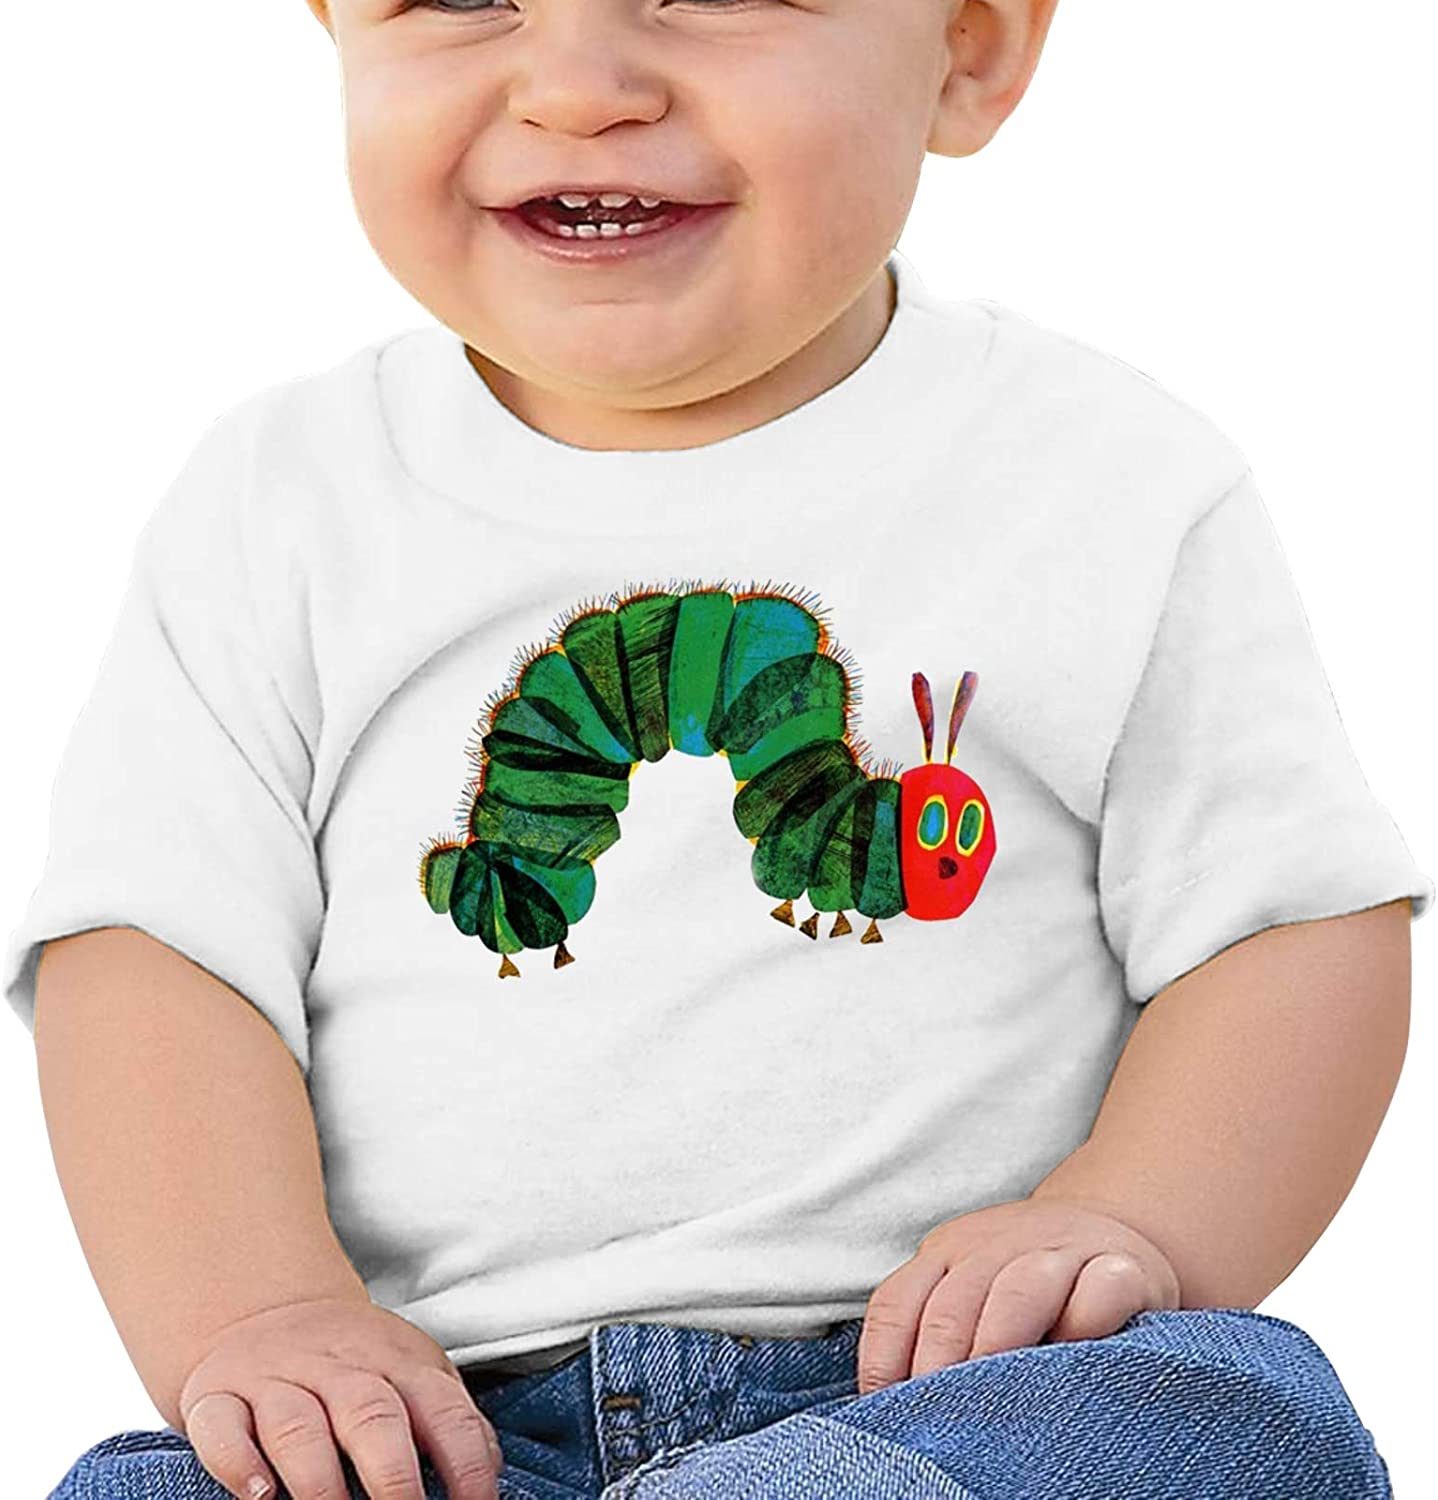 The Very Hungry Caterpillar Children's T-Shirts for Baby Boys and Girls